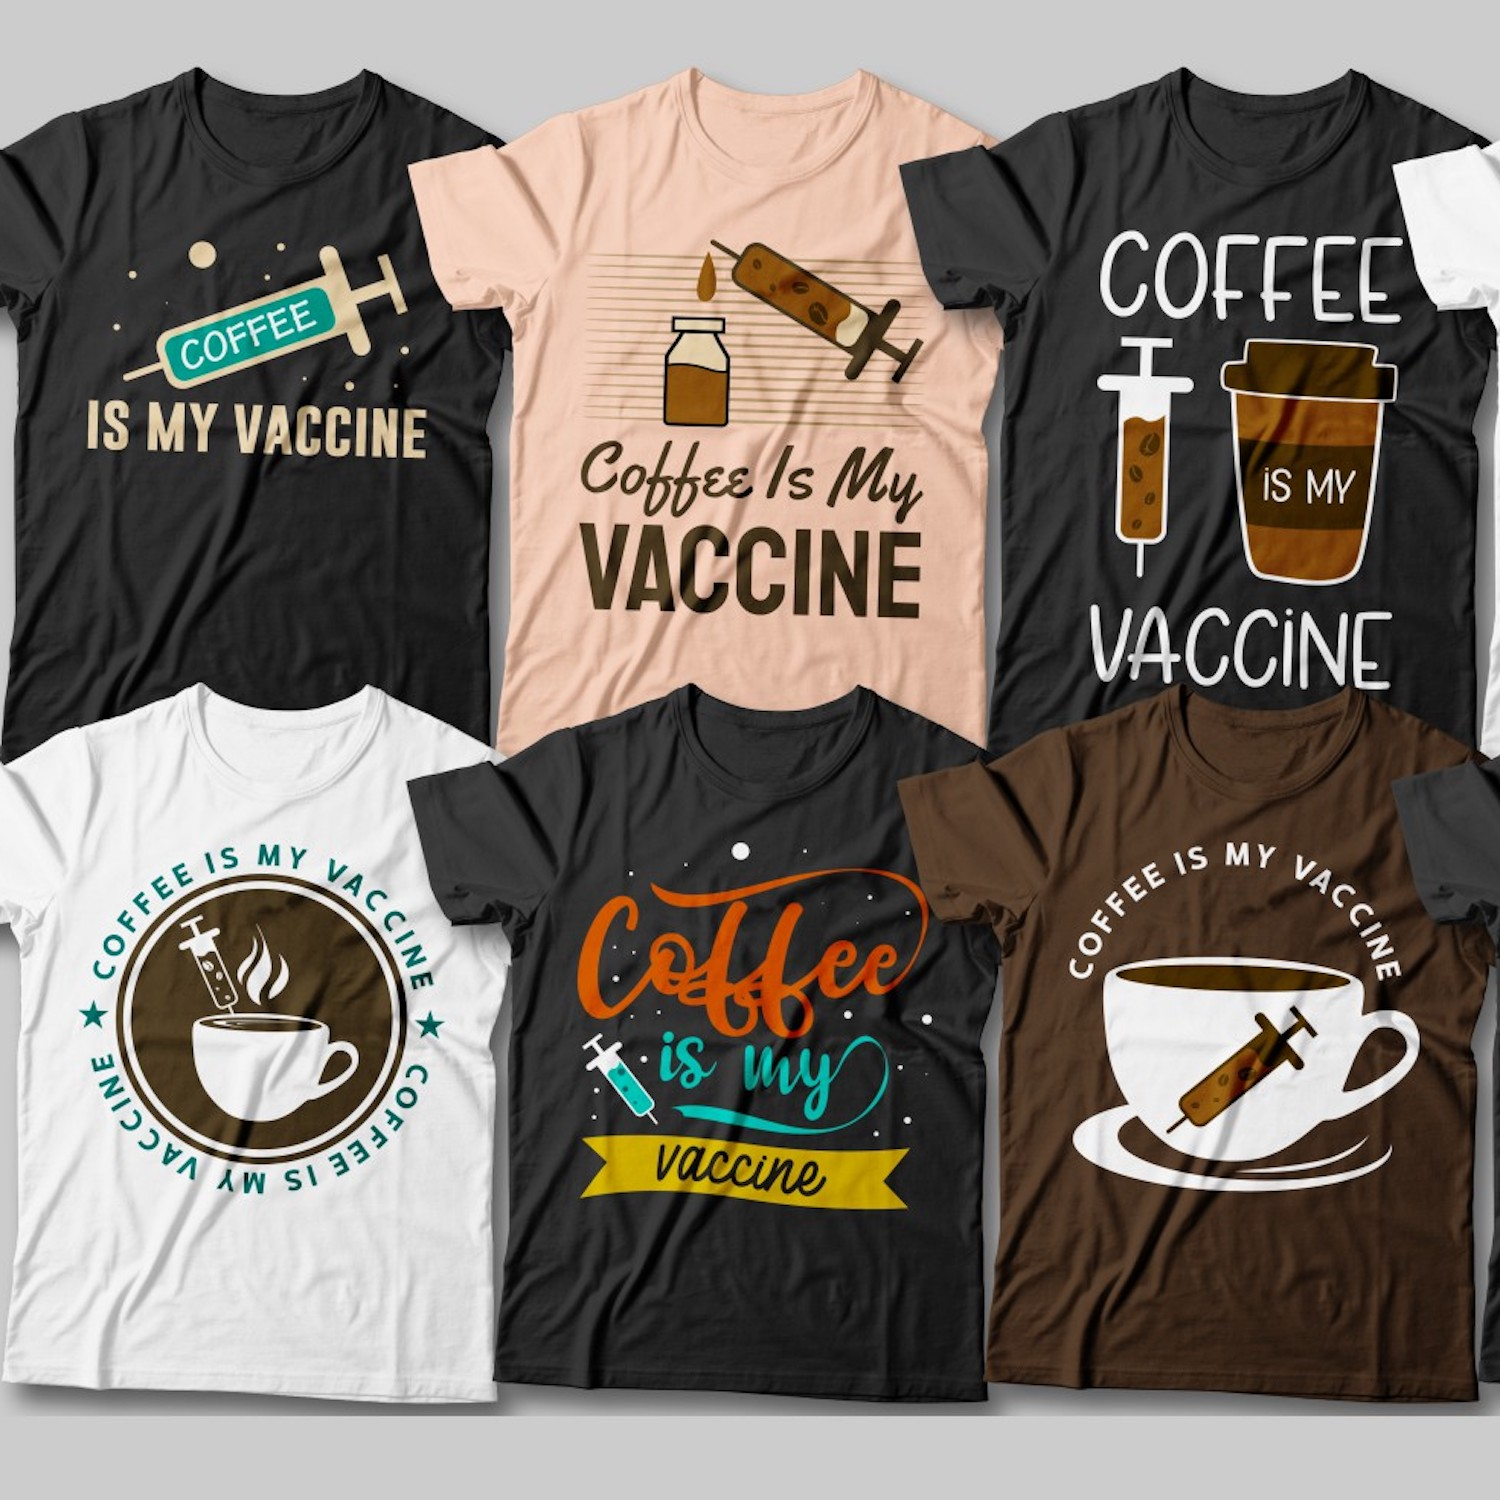 Coffee is My Vaccine T-Shirt Designs cover image.